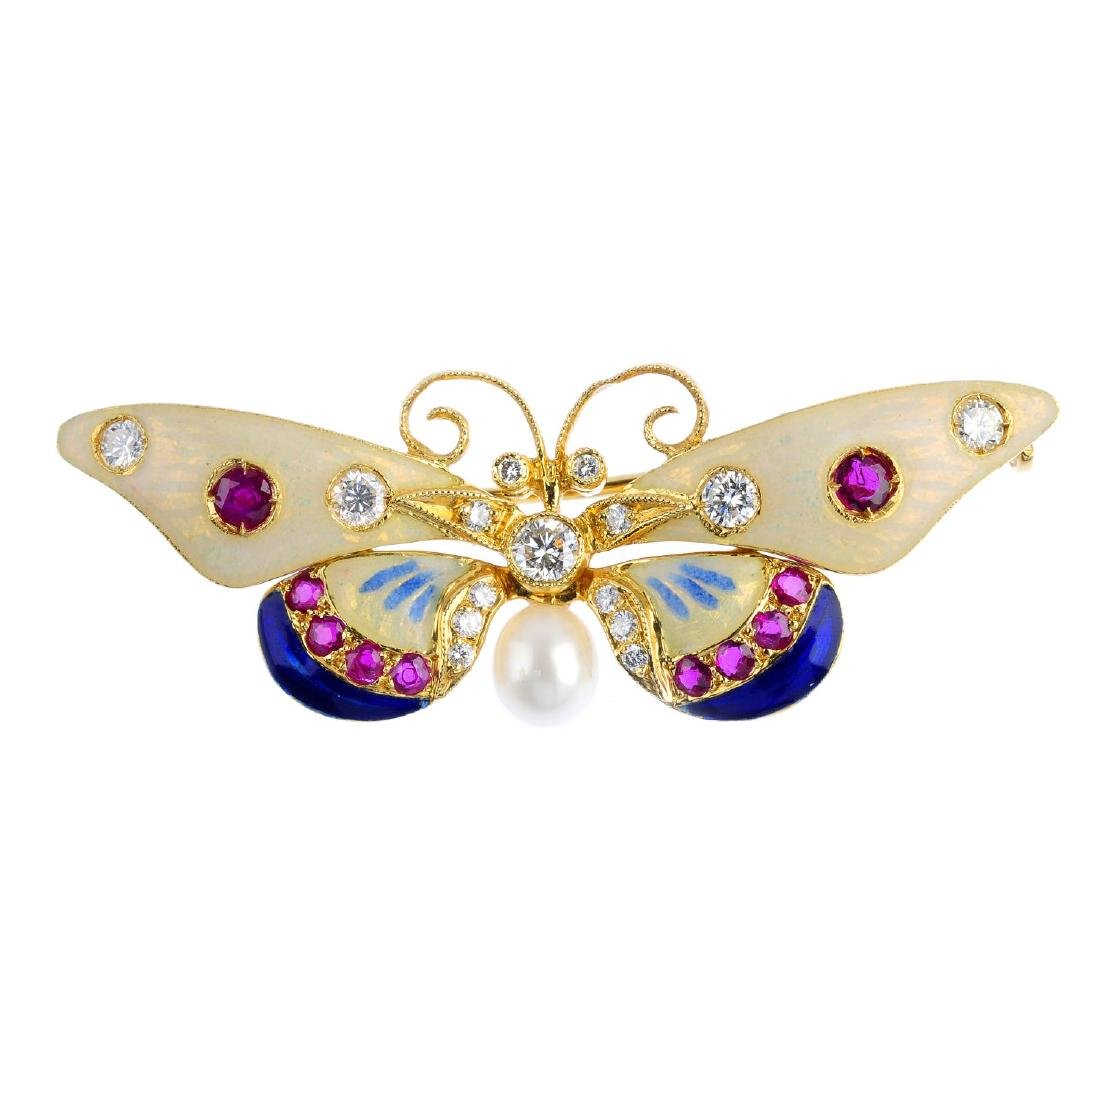 A diamond, ruby and enamel butterfly brooch. The